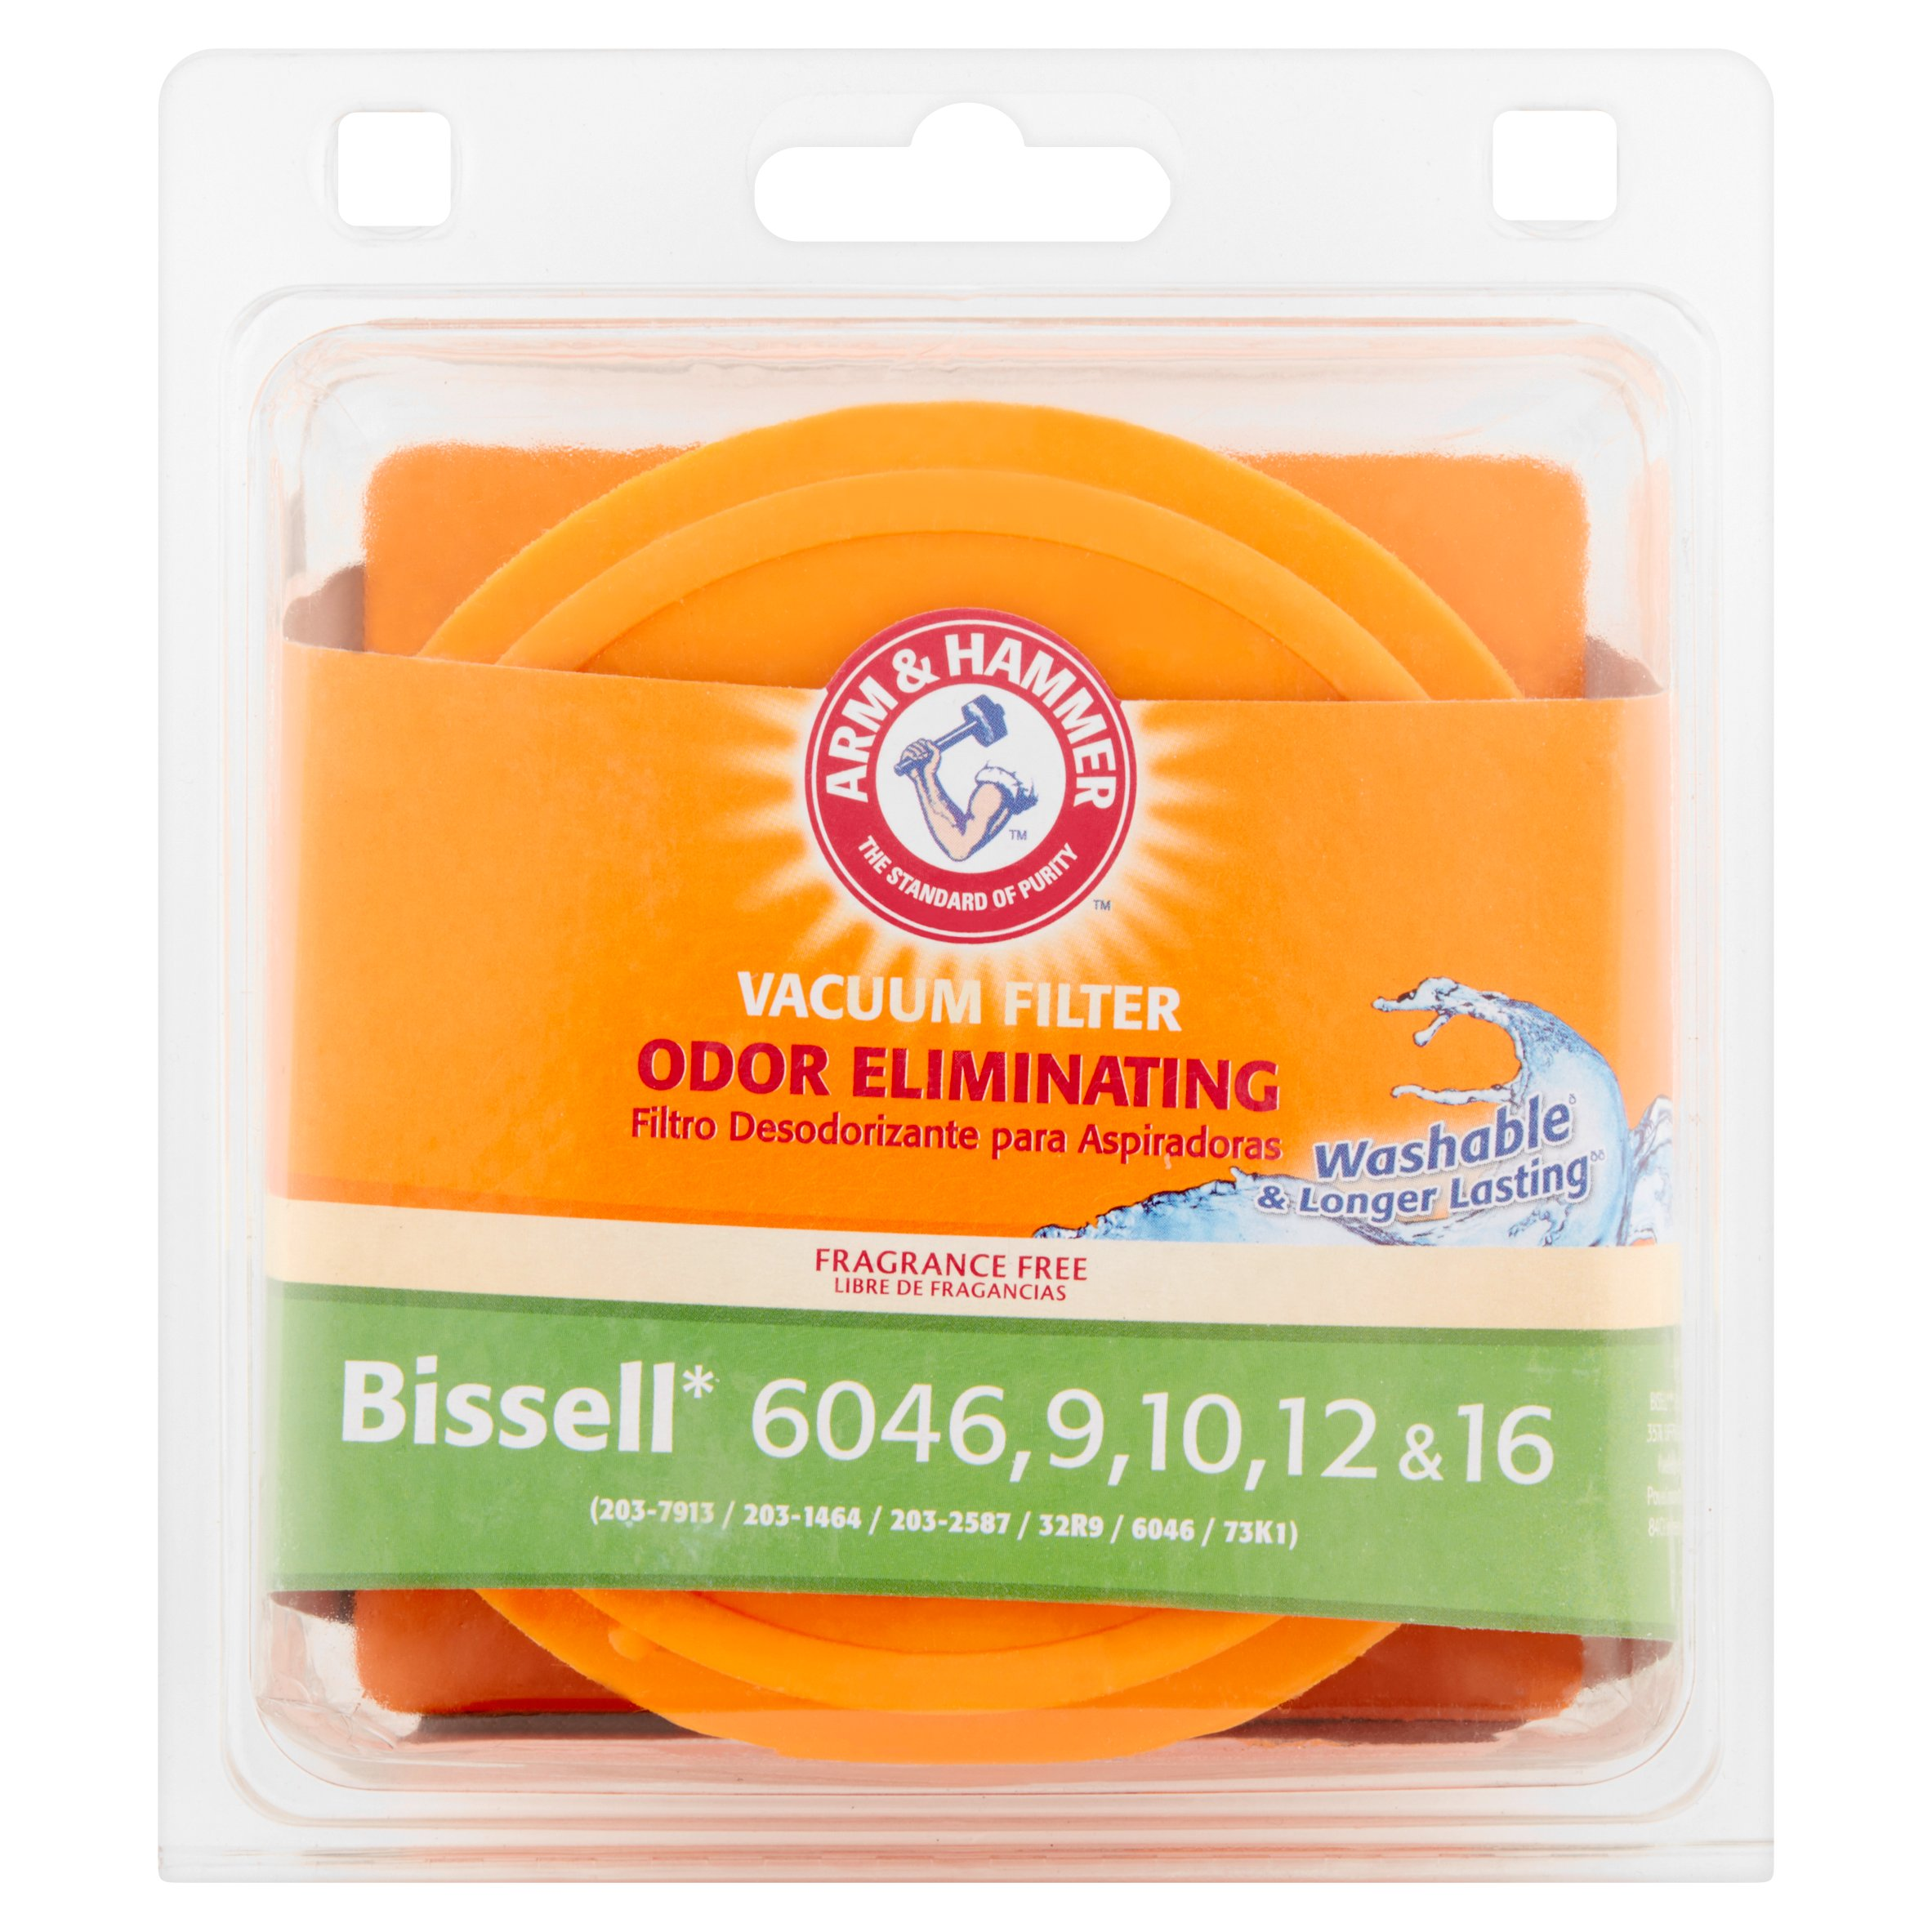 Arm & Hammer Odor Eliminating Bissell Vacuum Filter